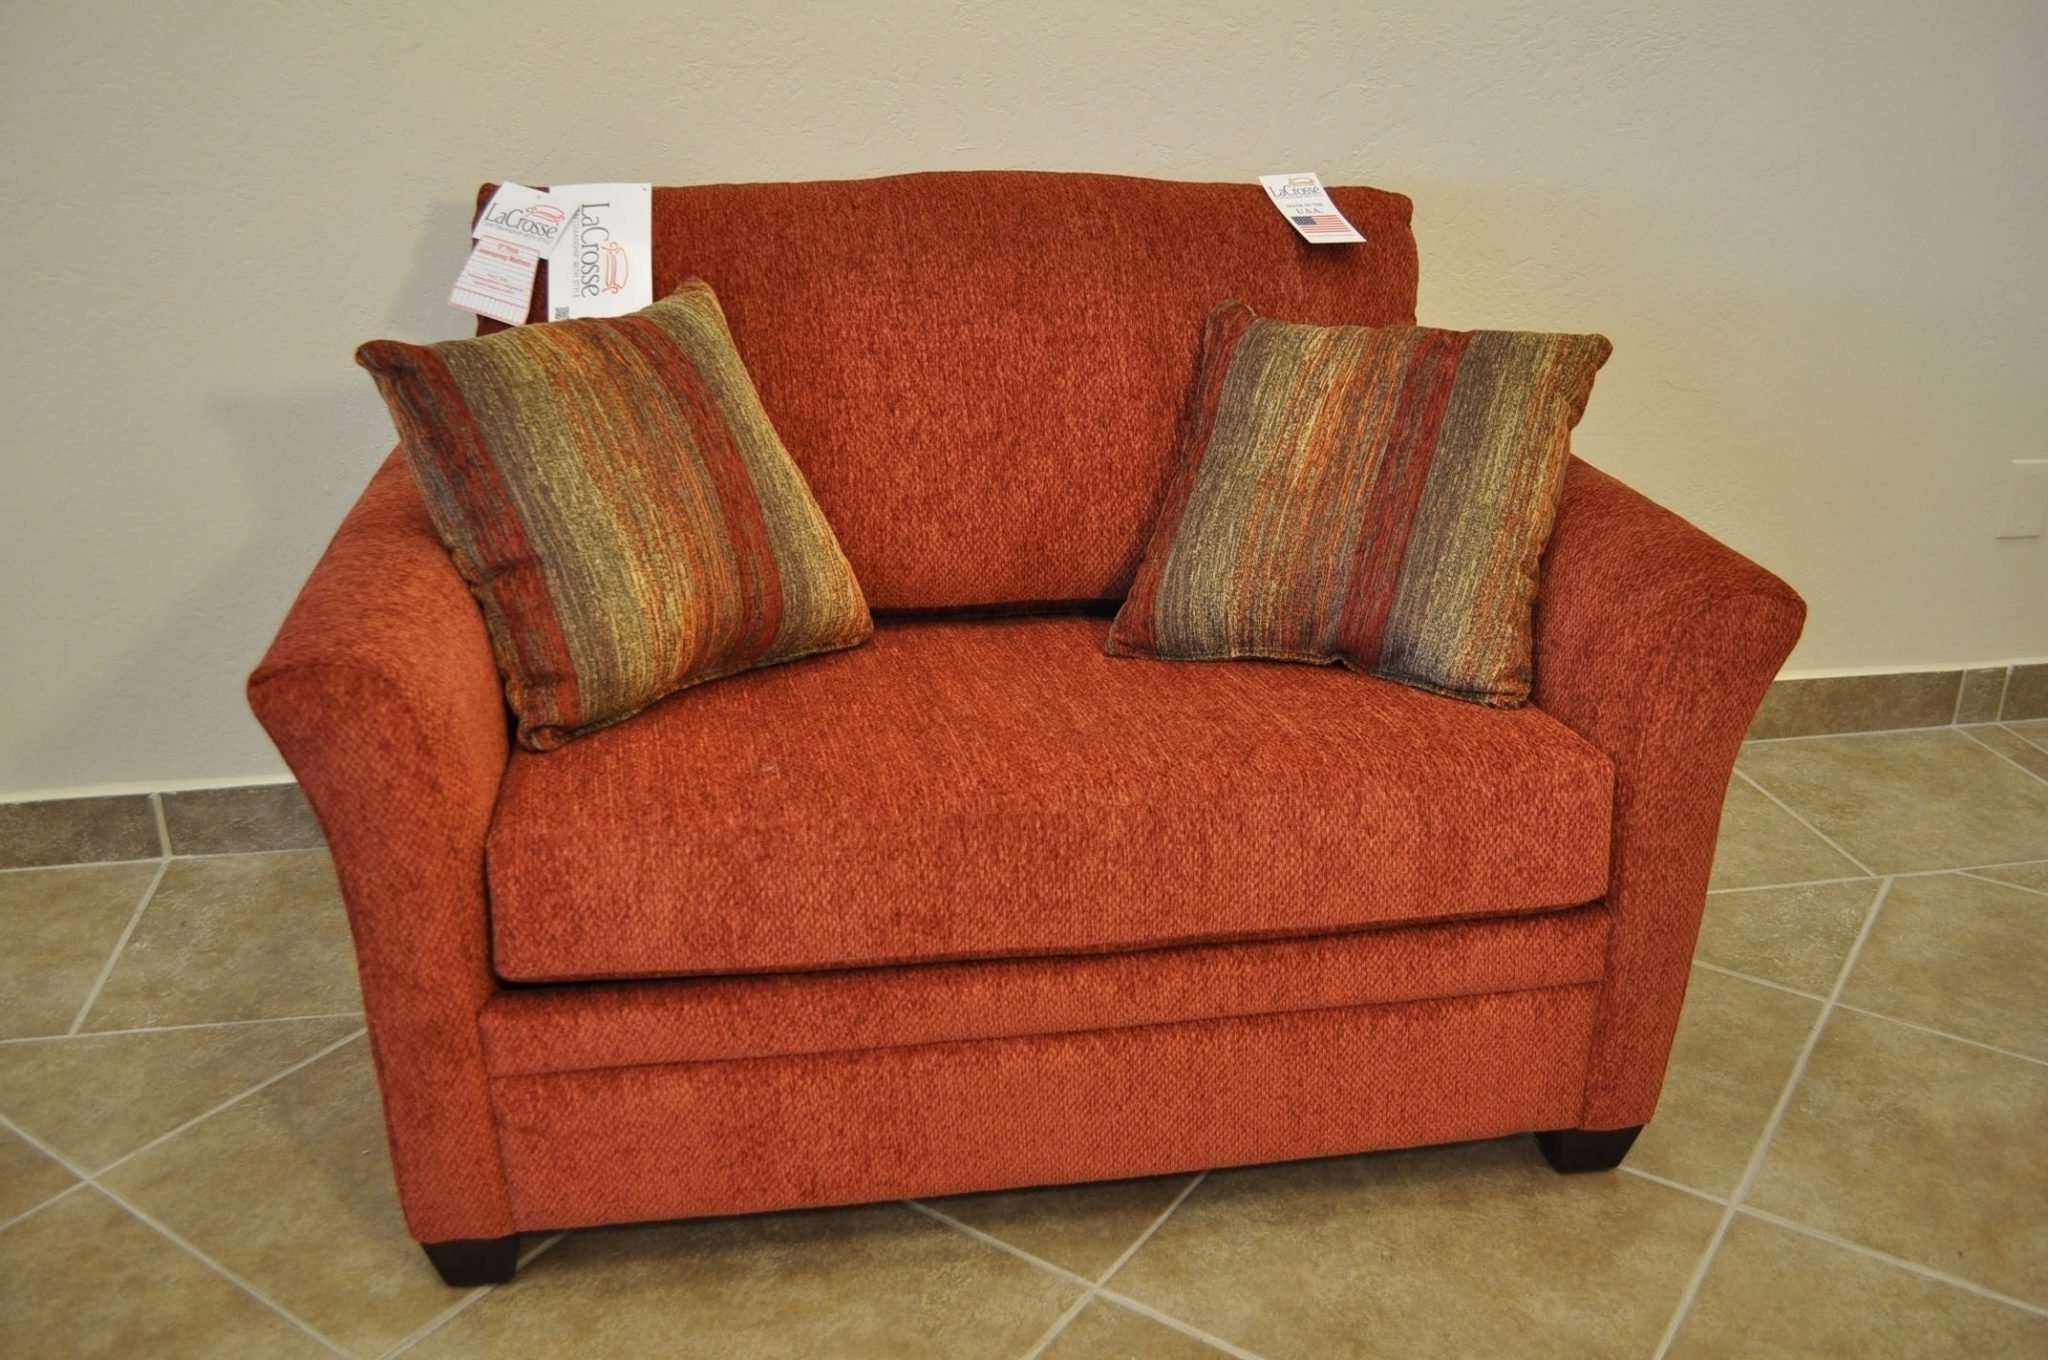 2018 Furniture Fancy Sleeper Sofa Ikea For Your Best Living Room In With Ikea Loveseat Sleeper Sofas (View 1 of 15)